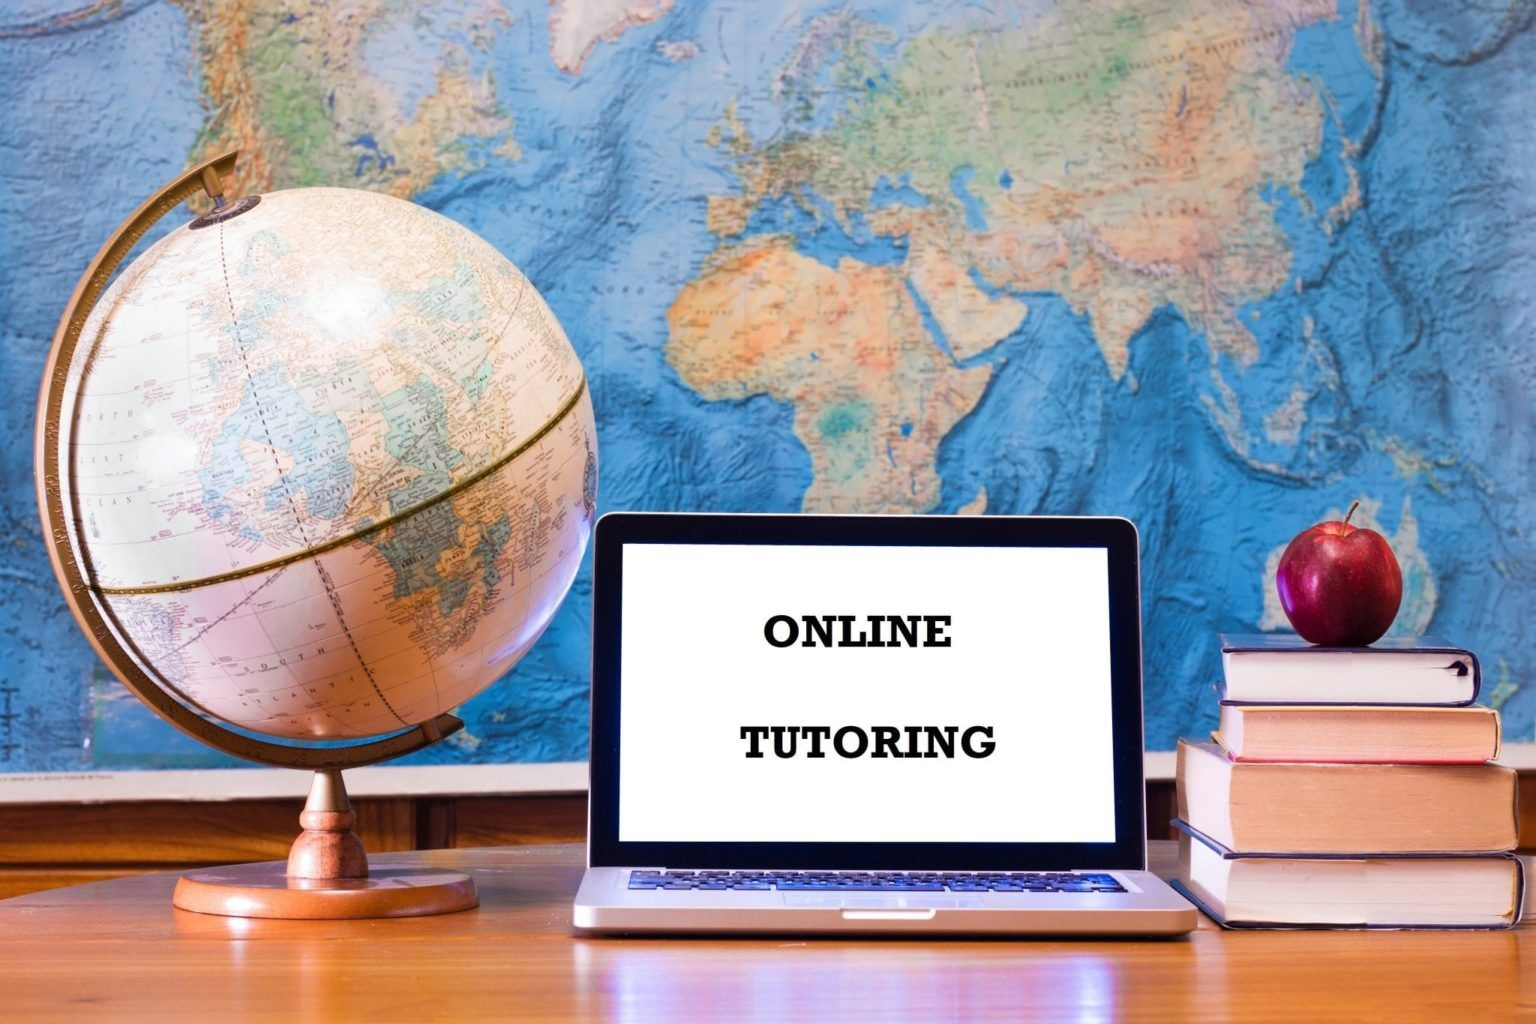 online math tutoring and online English tutoring service in Vancouver Canada with Hack Your Course Tutoring Service